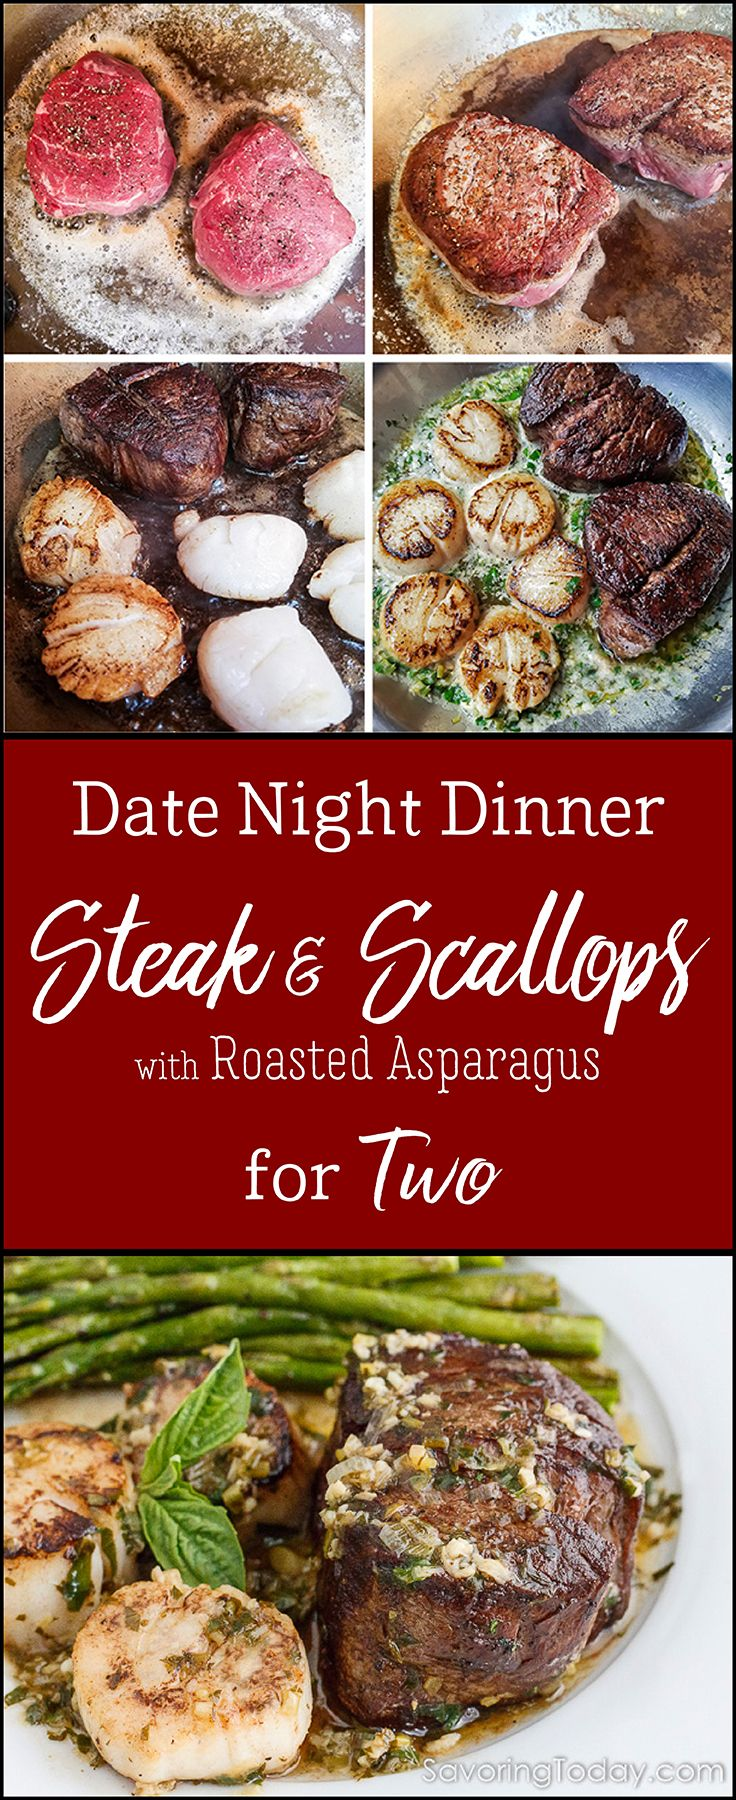 Scampi-Style Steak & Scallops recipe with Roasted Asparagus is an impressive dish, takes only a few minutes to prepare and the cost will be easier to stomach too. Tenderloin steak is seared in butter then finished with scallops in accents of lemon zest, white wine, garlic, and fresh basil for surf-n-turf heaven. You won't believe how easy it is to skip the crowded restaurants and enjoy an amazing date night dinner at home.